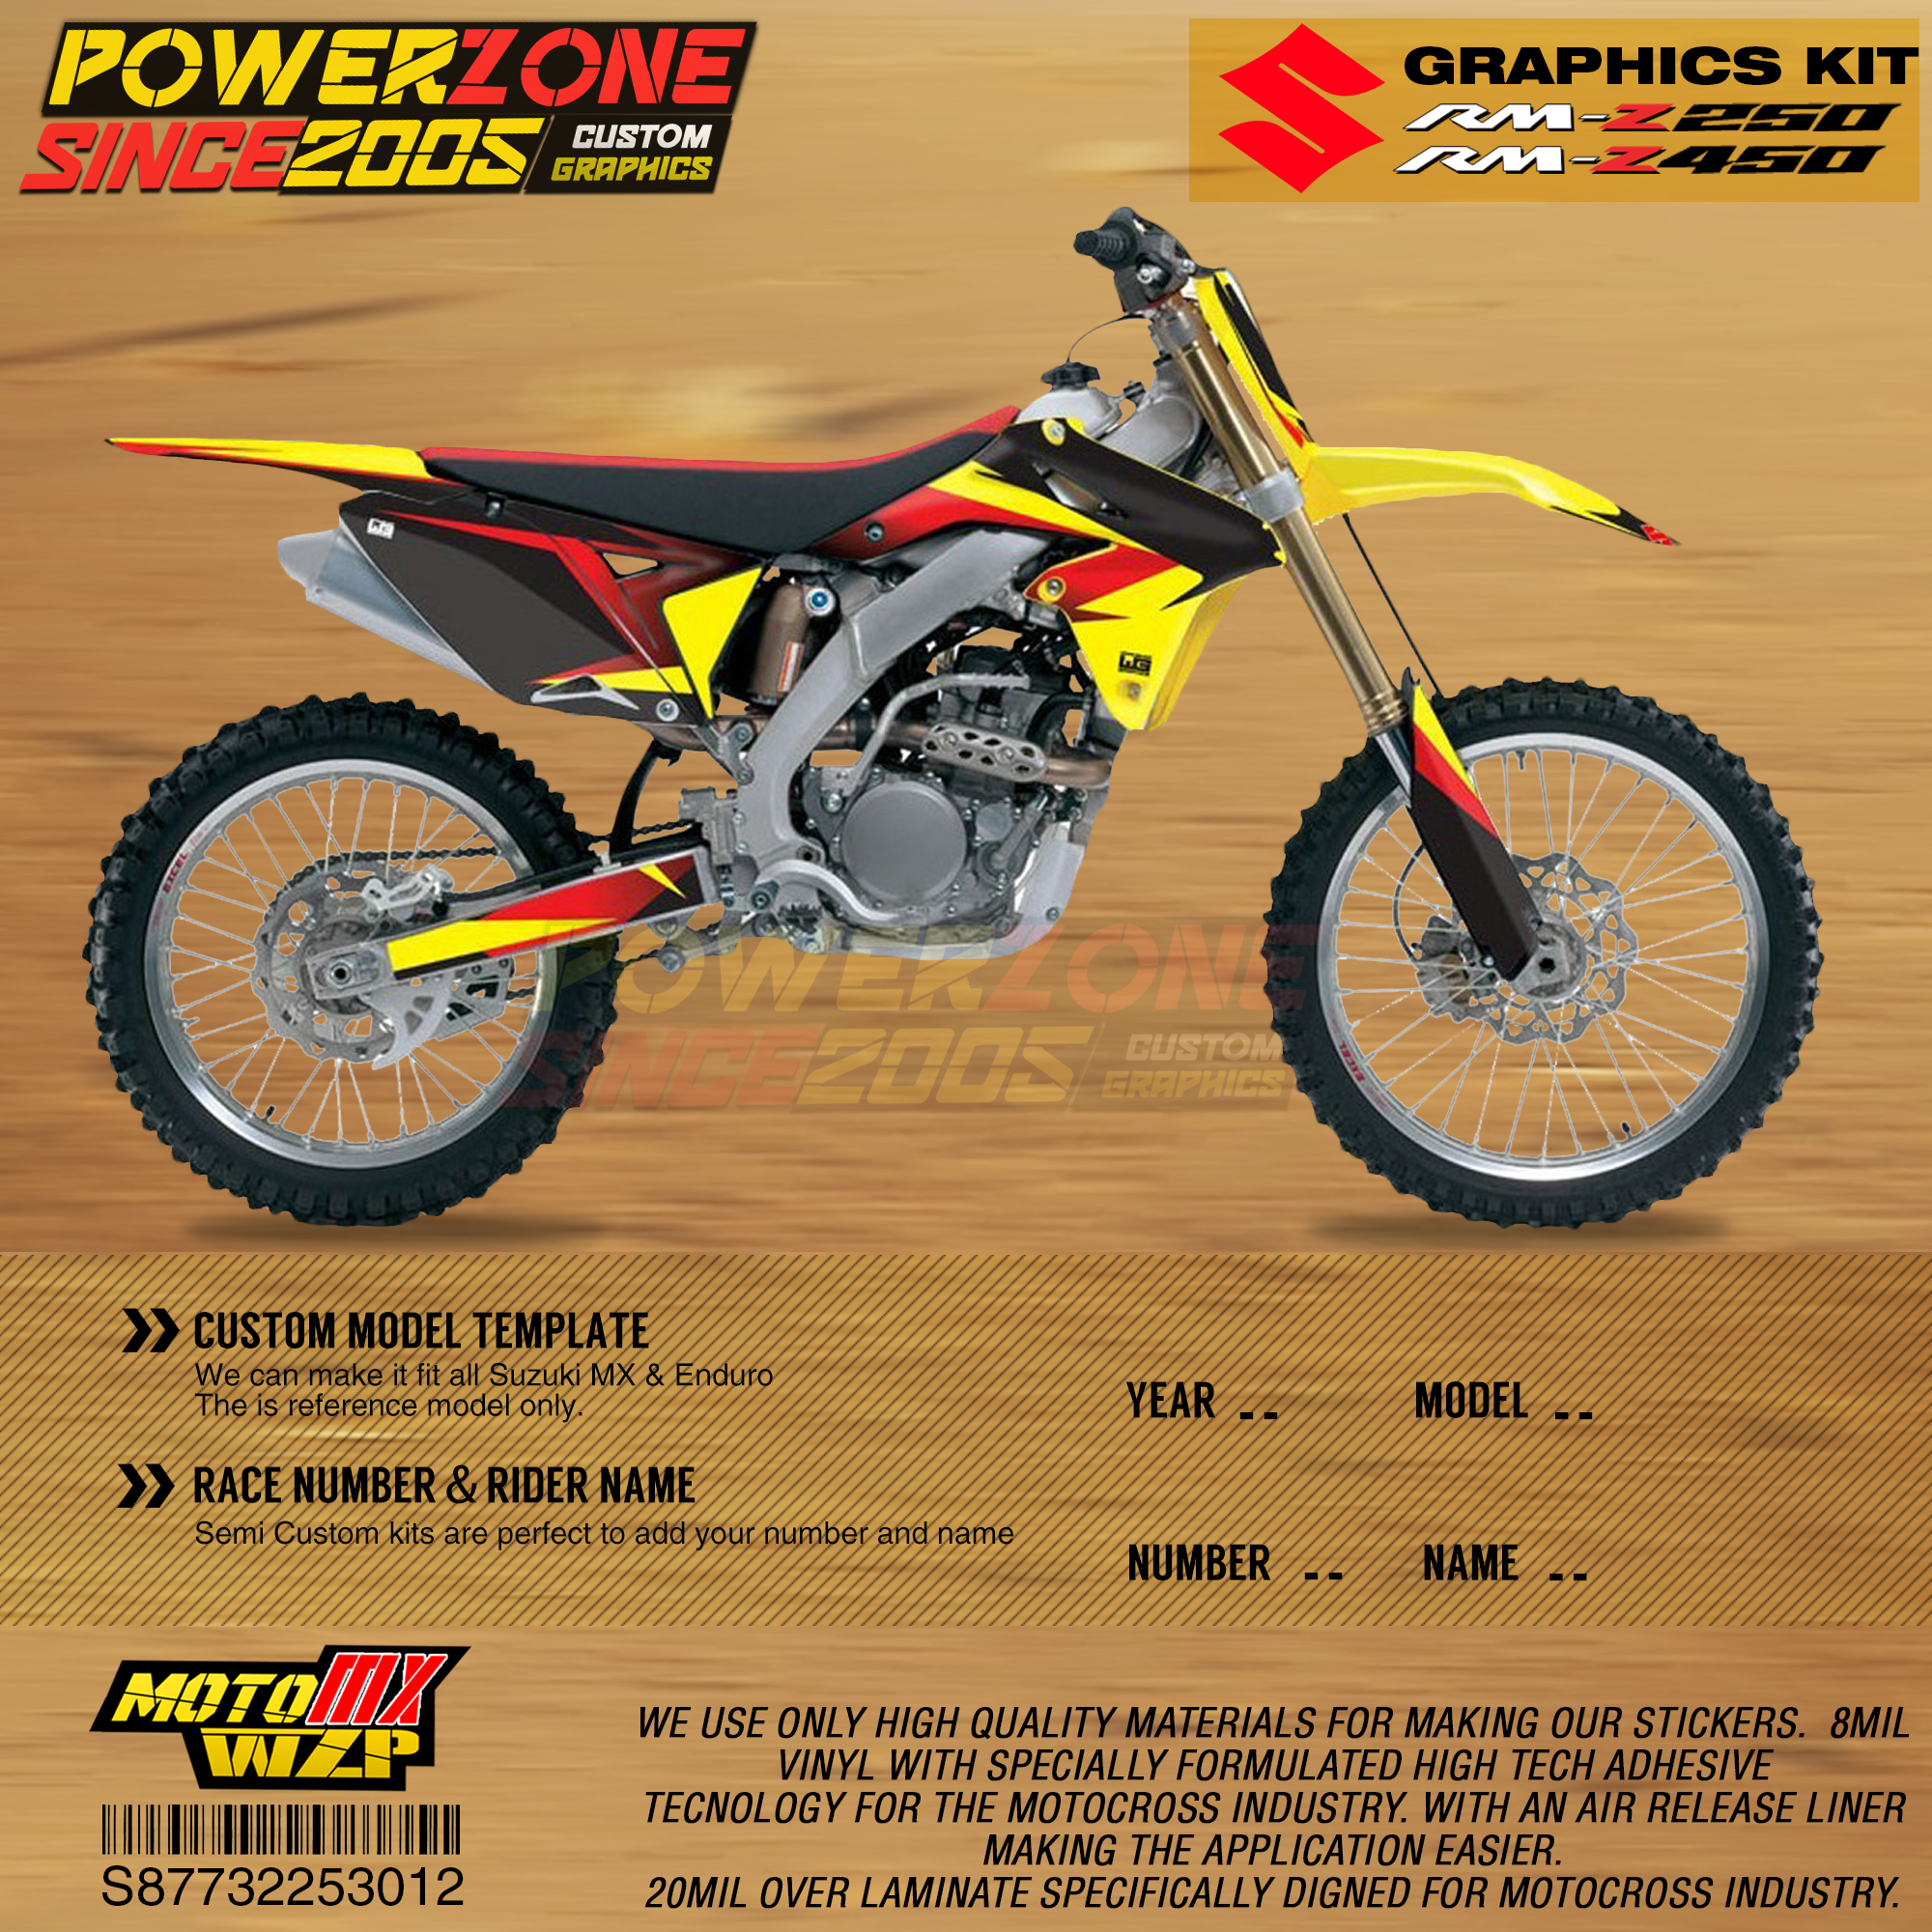 PowerZone Custom Team Graphics Backgrounds Decals 3M Stickers Kit For Suzuki RMZ250 04-06 07-09 10-18 RMZ450 08-17 RM 03-08 012